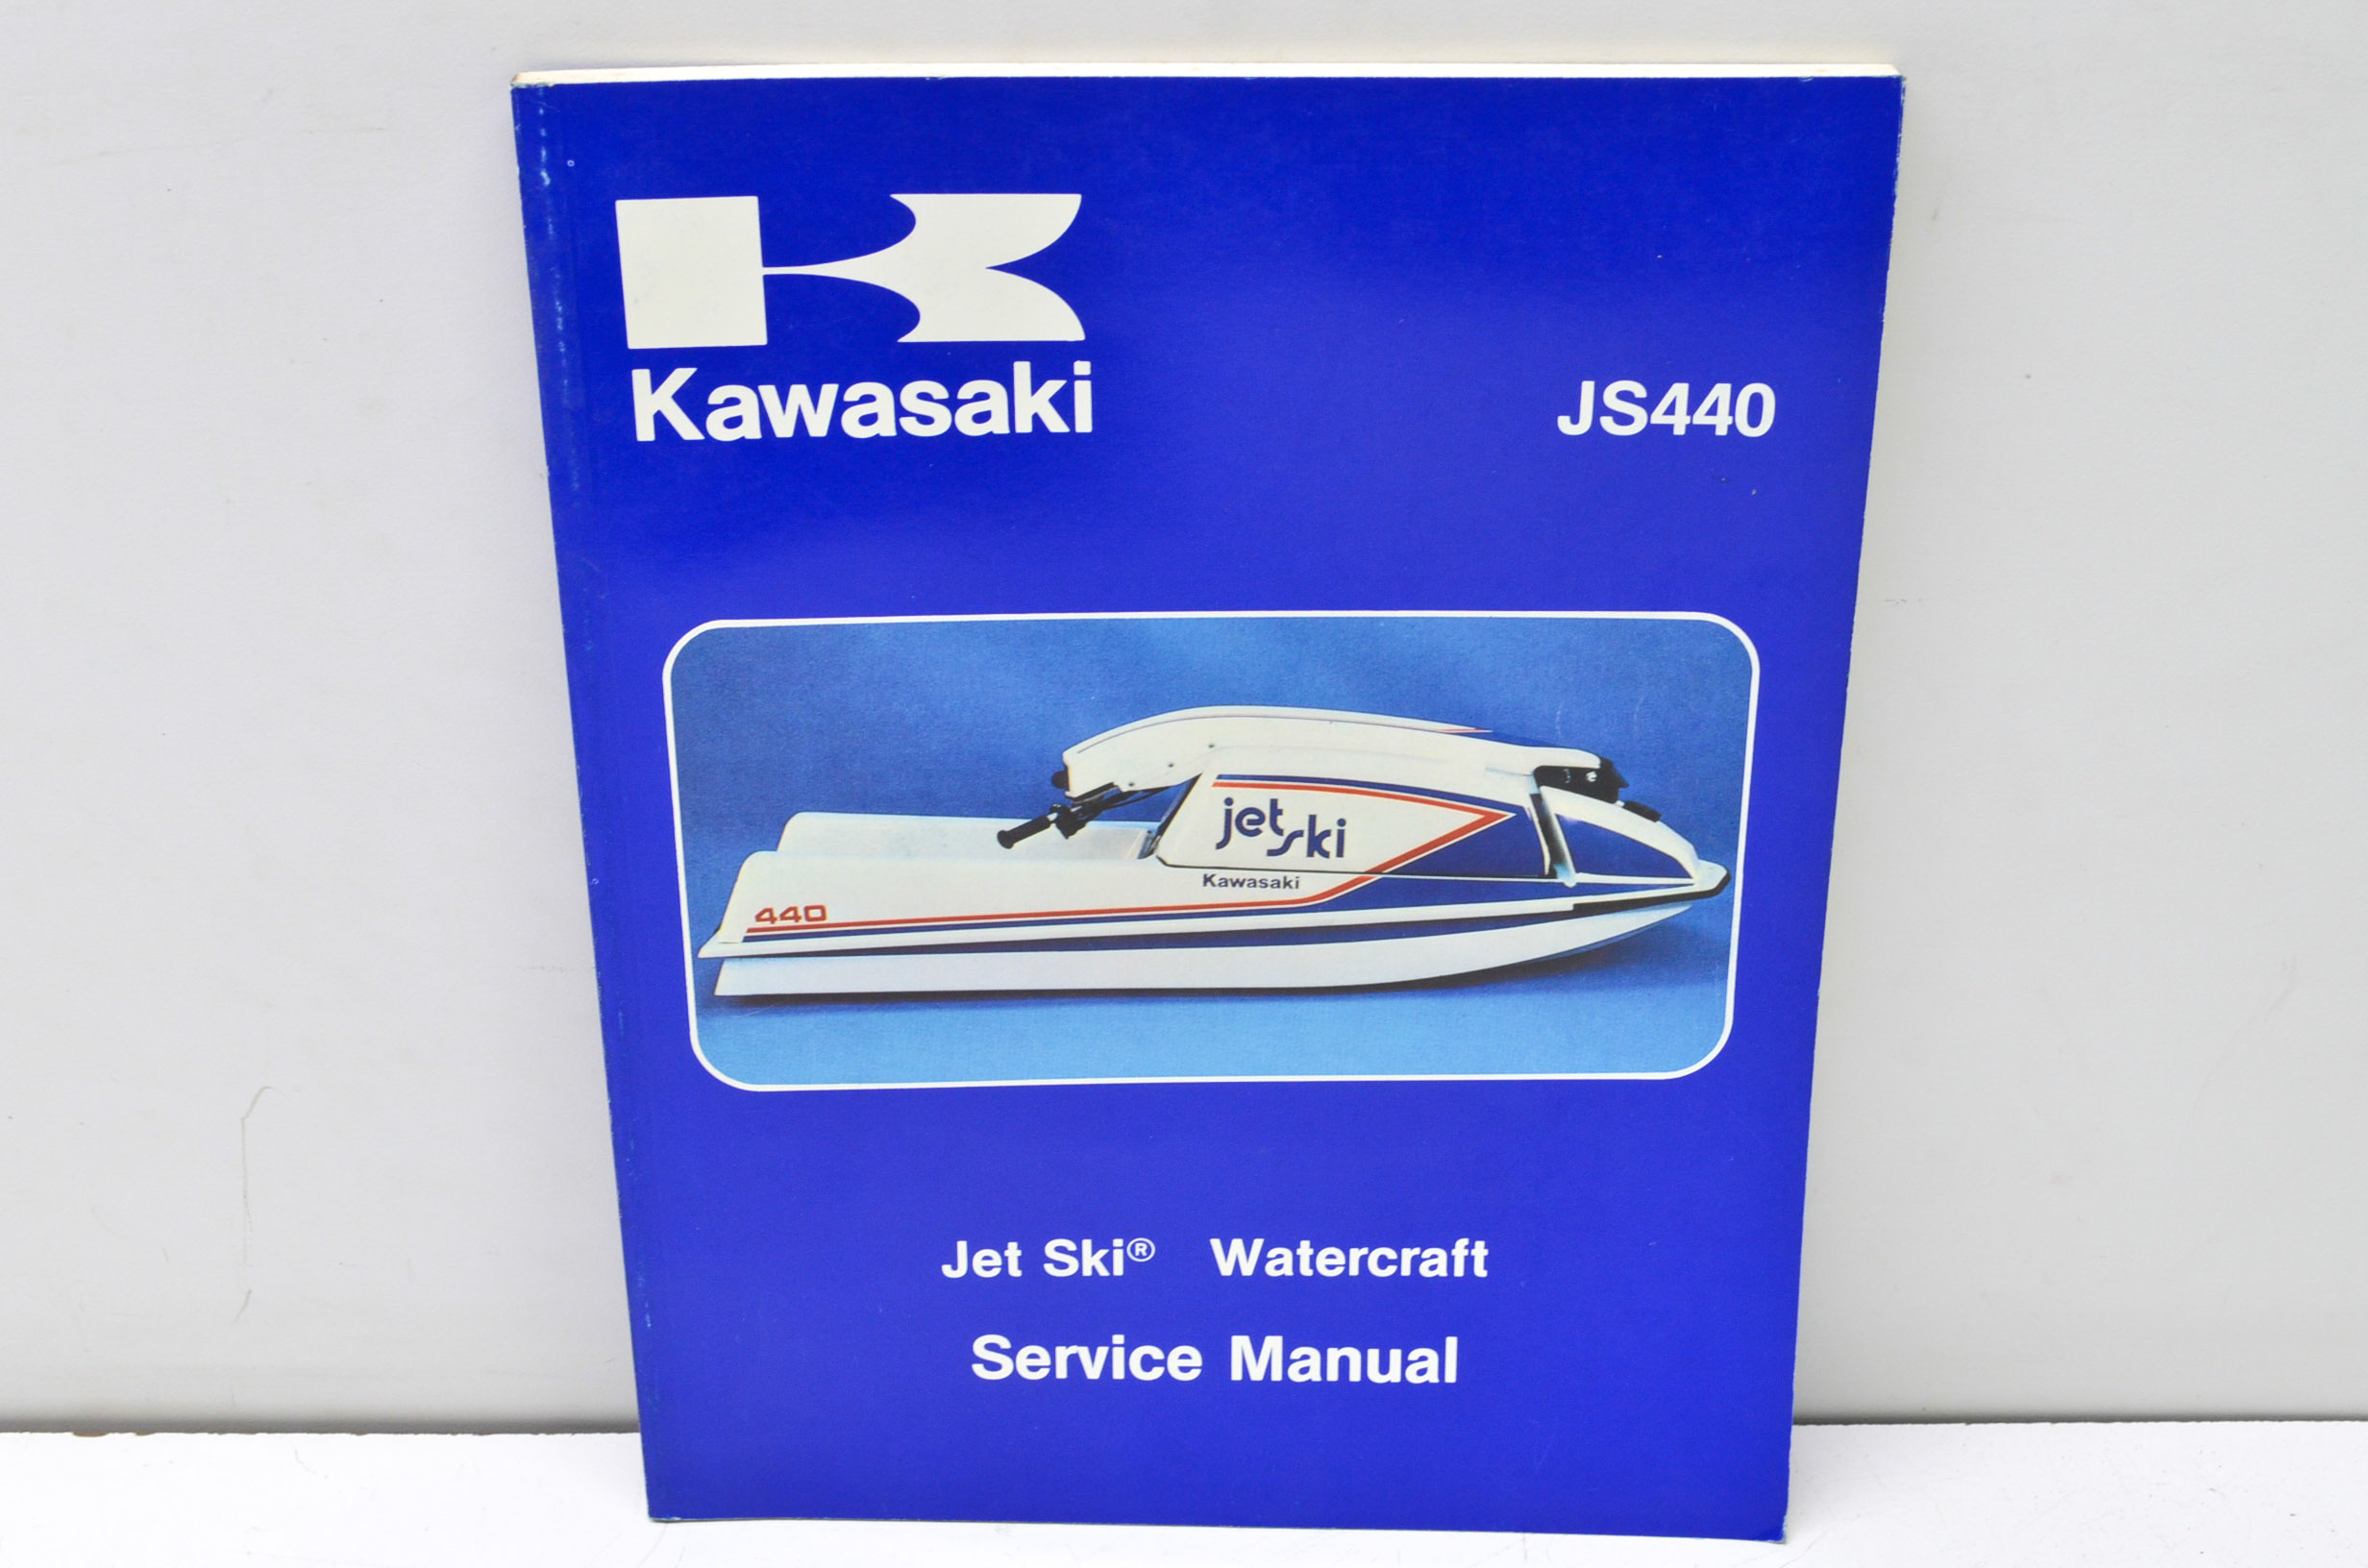 Kawasaki 99963-0001-05 JS440 Jet Ski Watercraft Service Manual QTY 1 -  Walmart.com